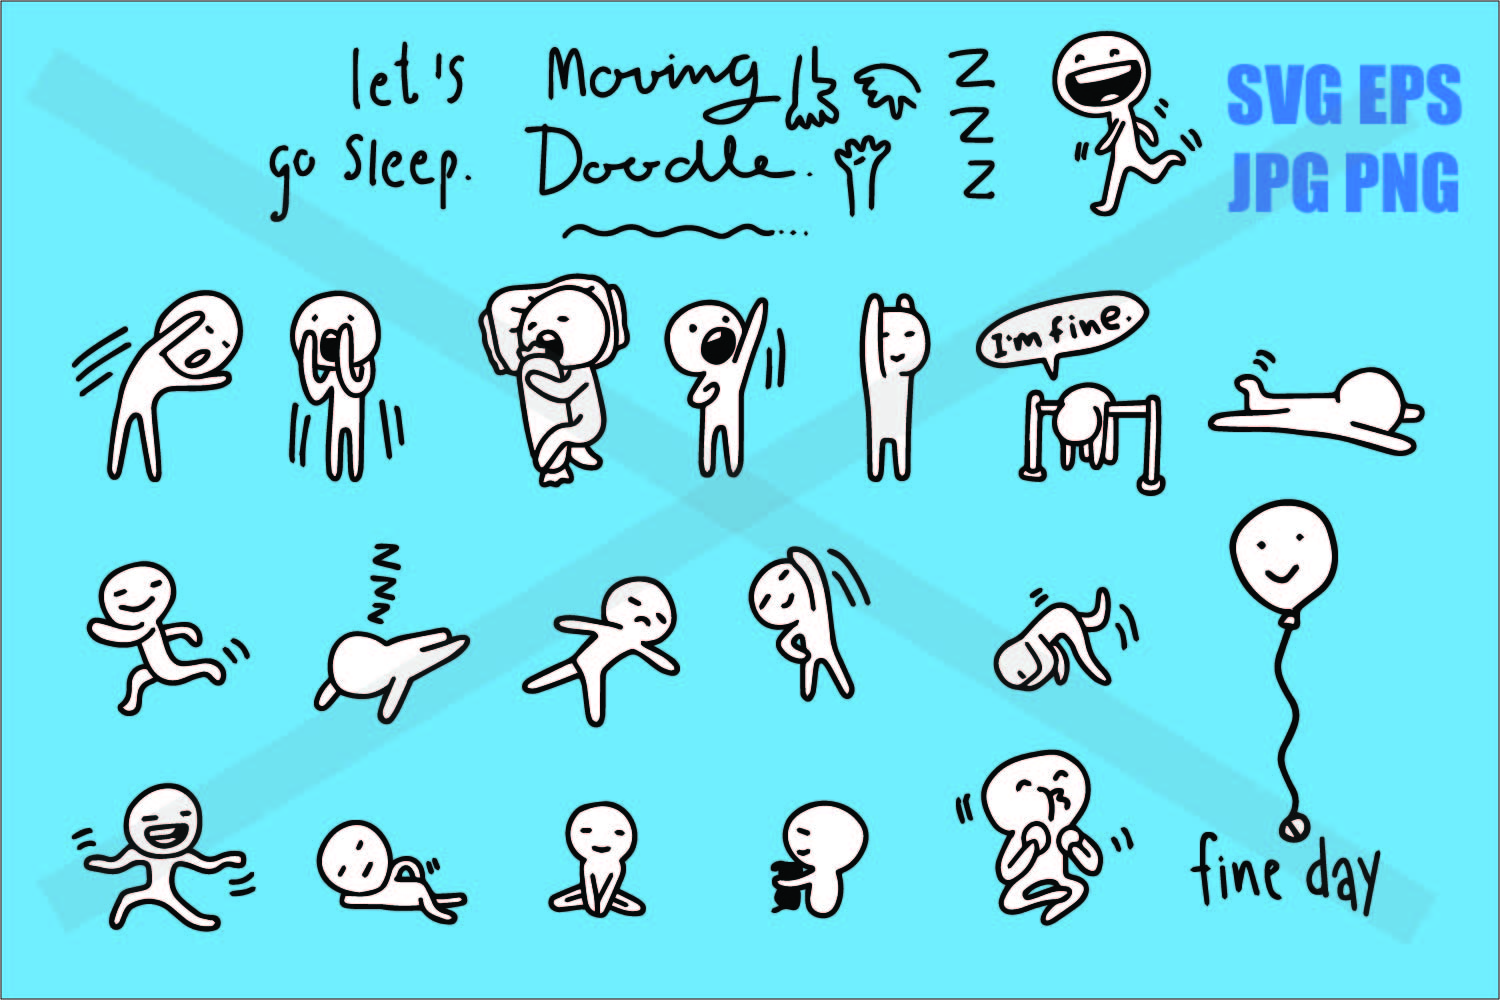 Doogle Simple Guy Everyday Life - SVG EPS JPG PNG example image 1